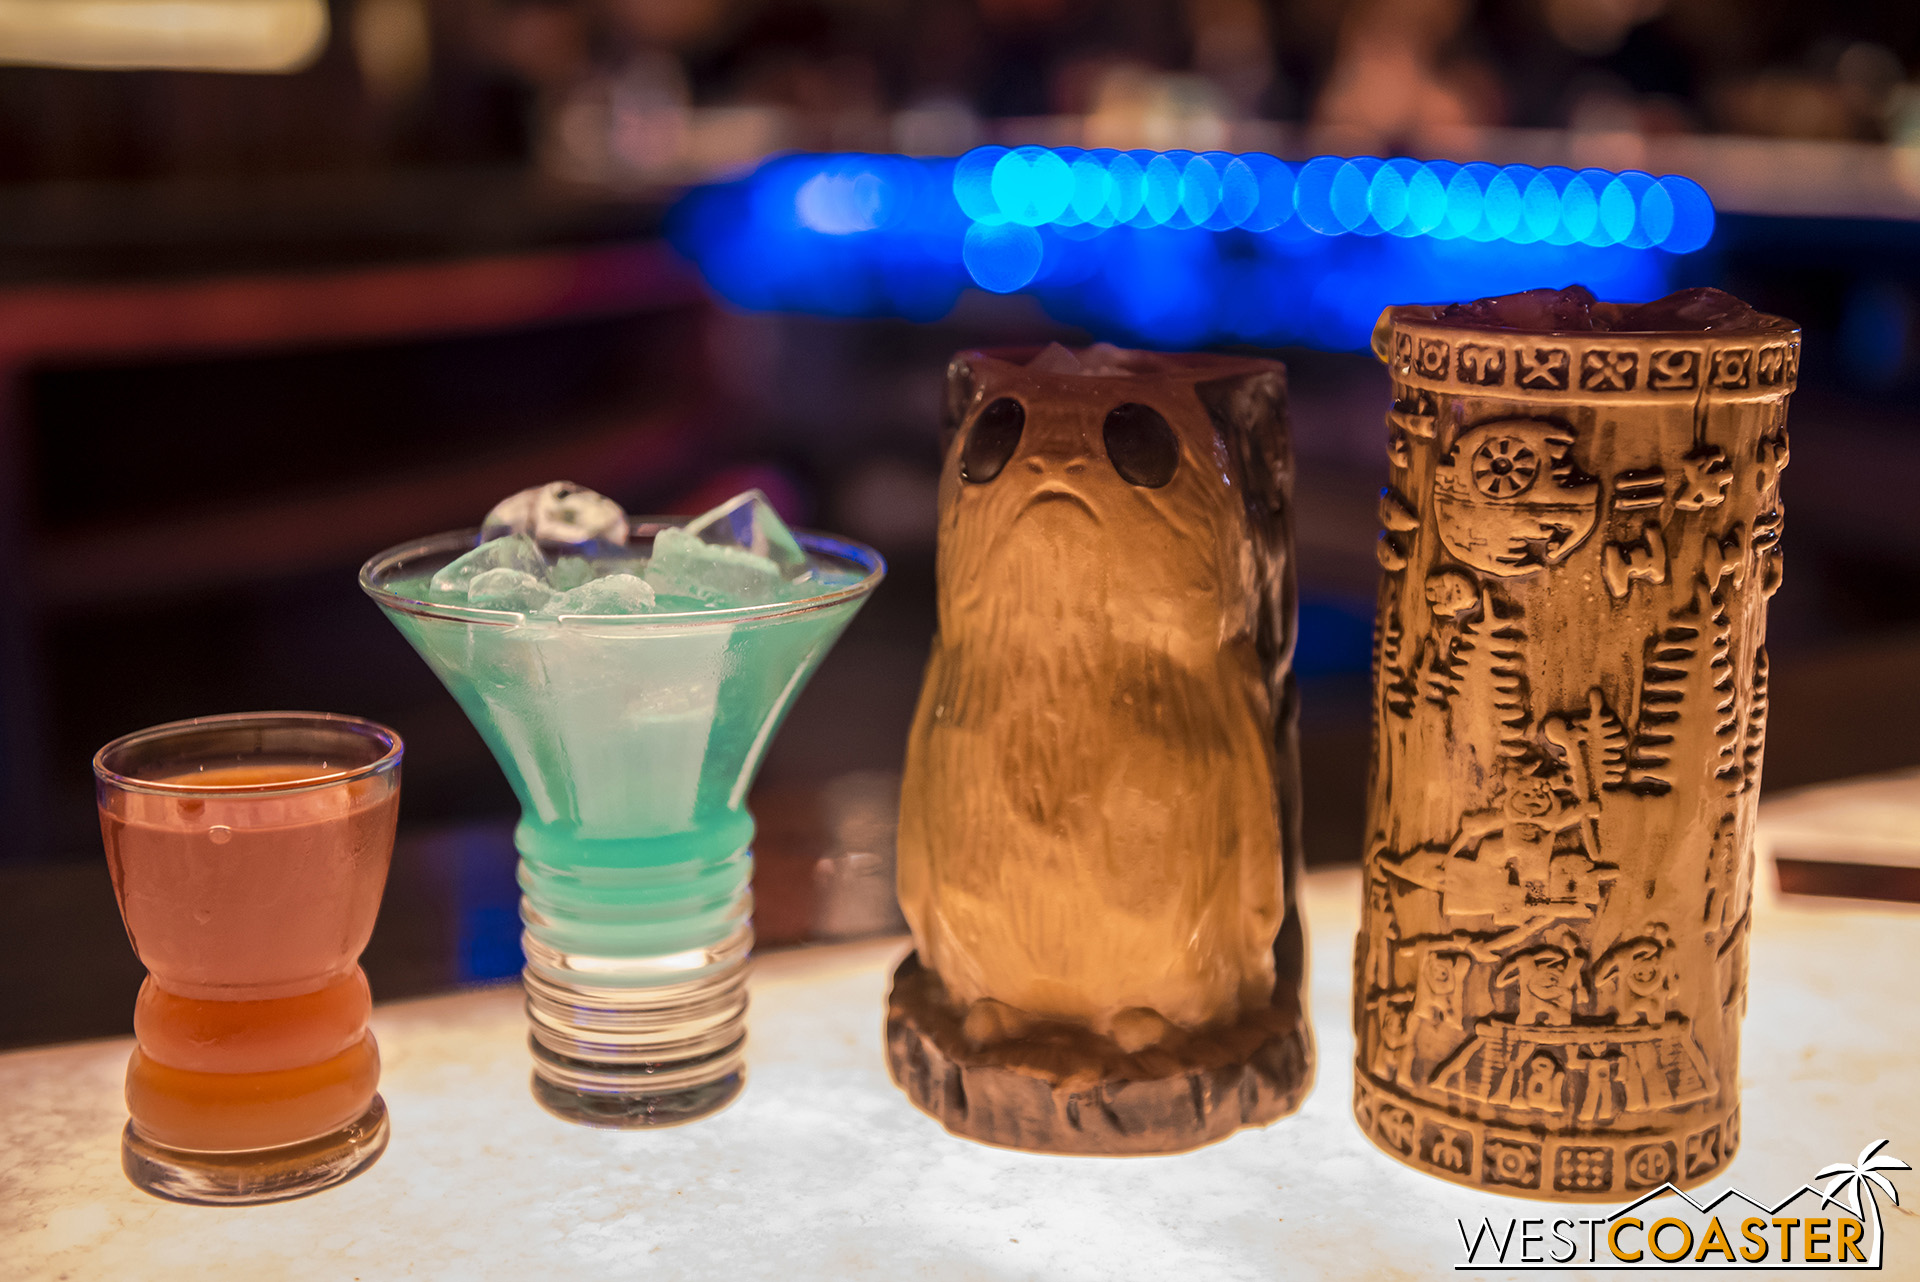 Drinks at Oga's Cantina are pricey, but the souvenirs are pretty cute and nice.